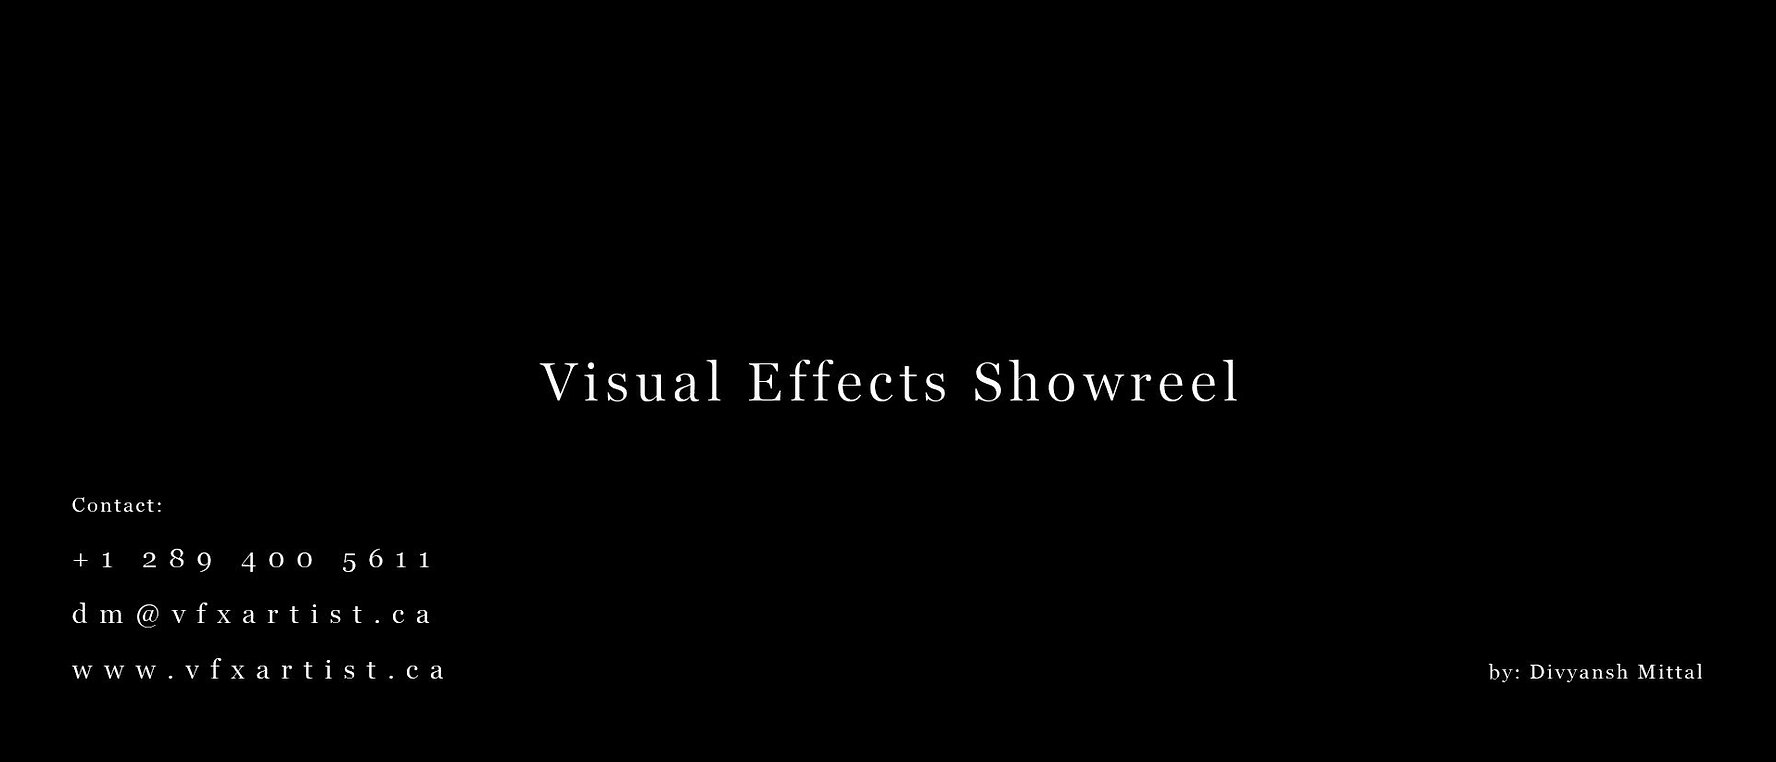 Visual Effects Showreel by Divyansh Mittal